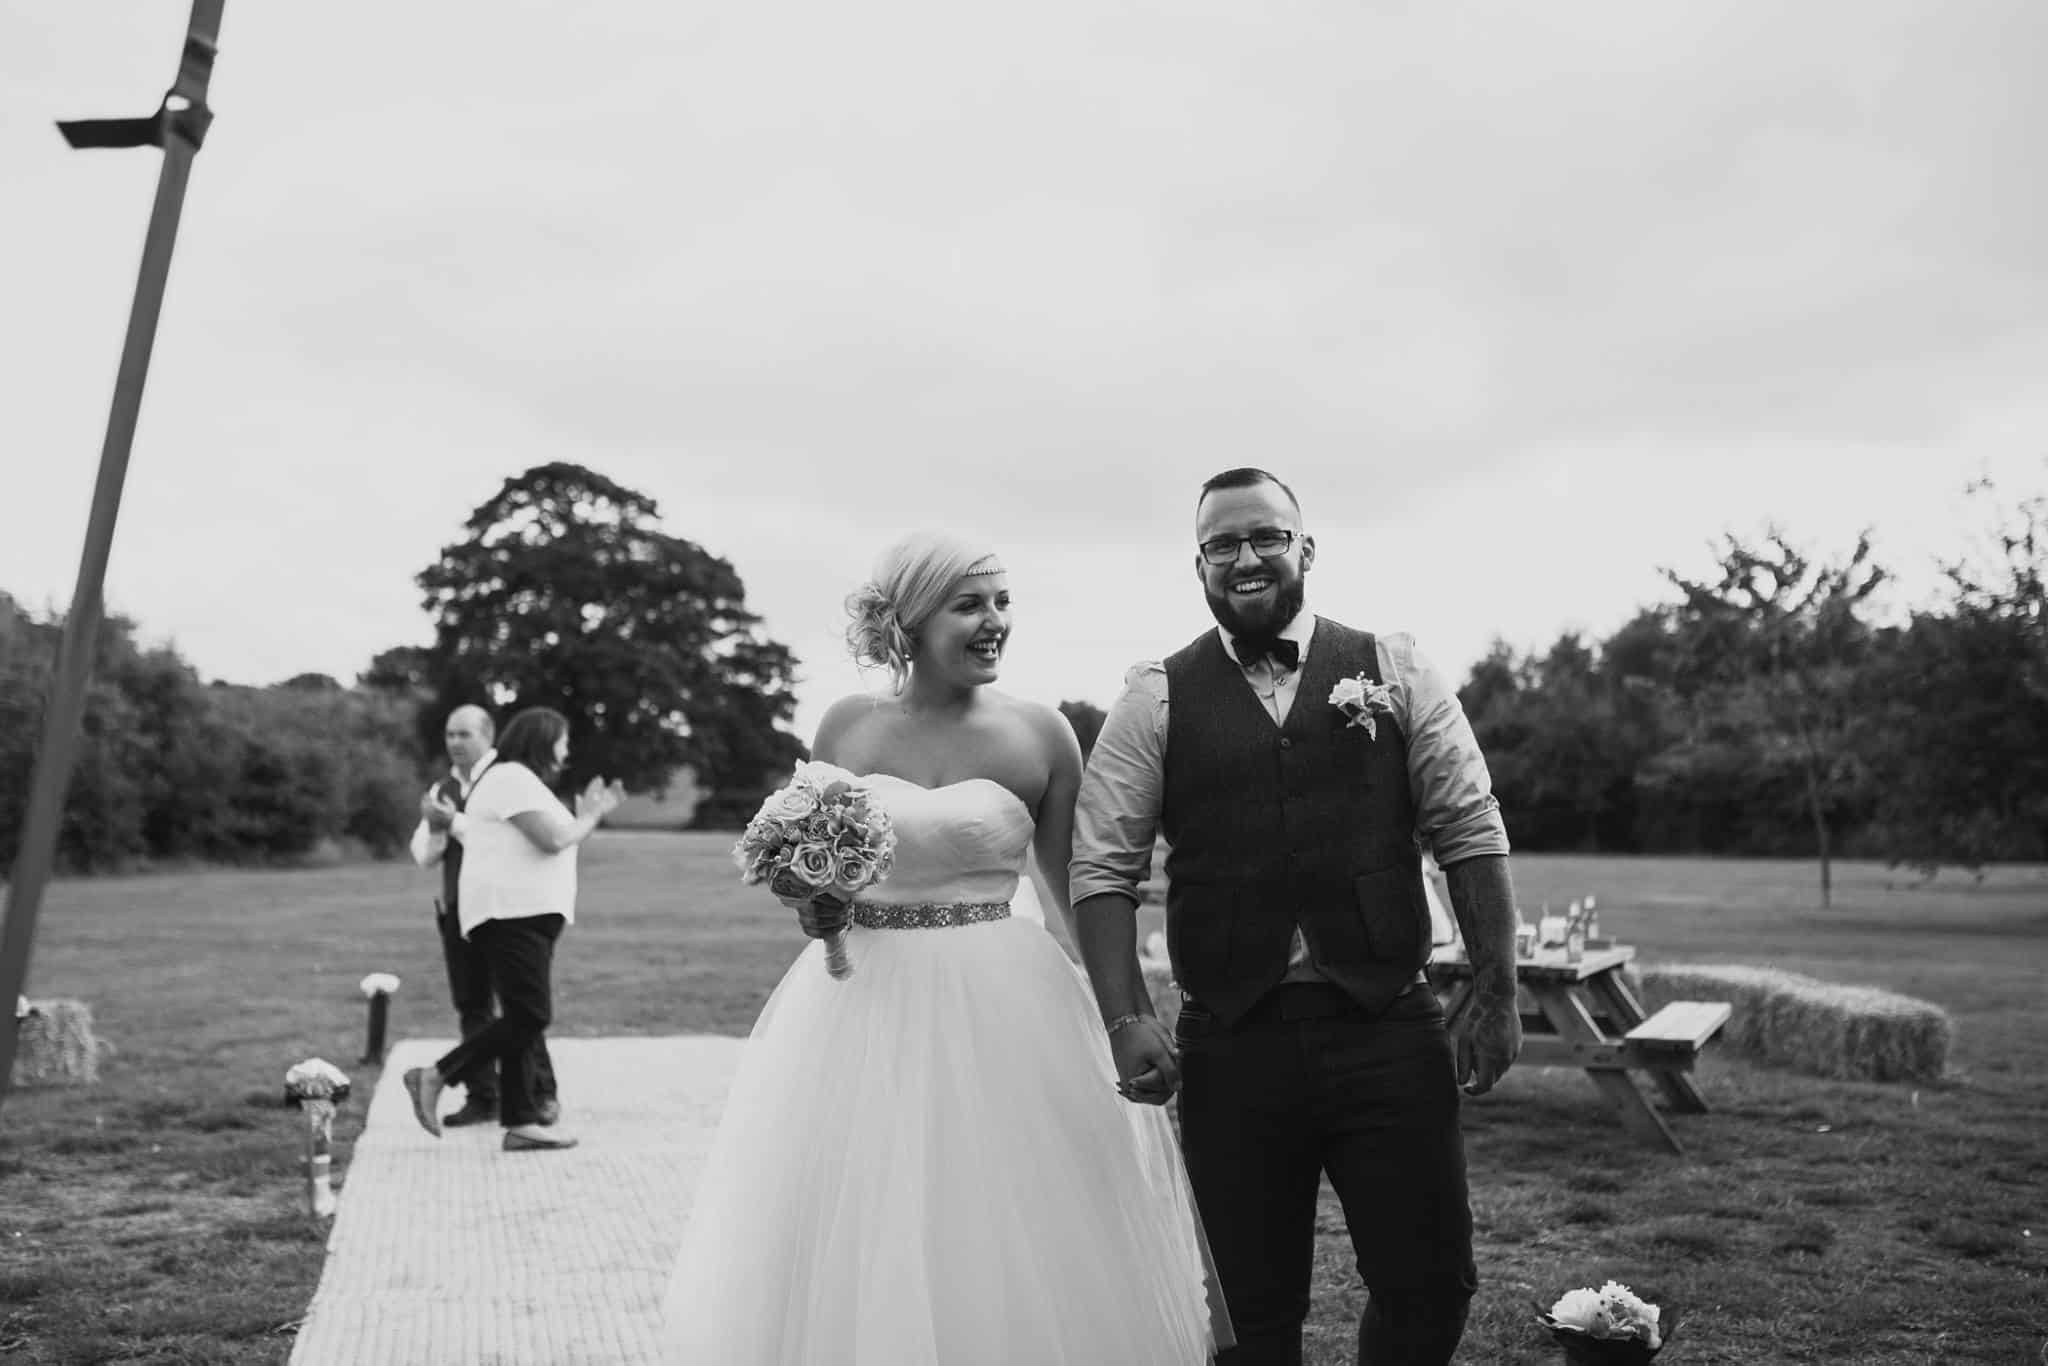 married - Sami Tipi Wedding at Bawdon Lodge Farm